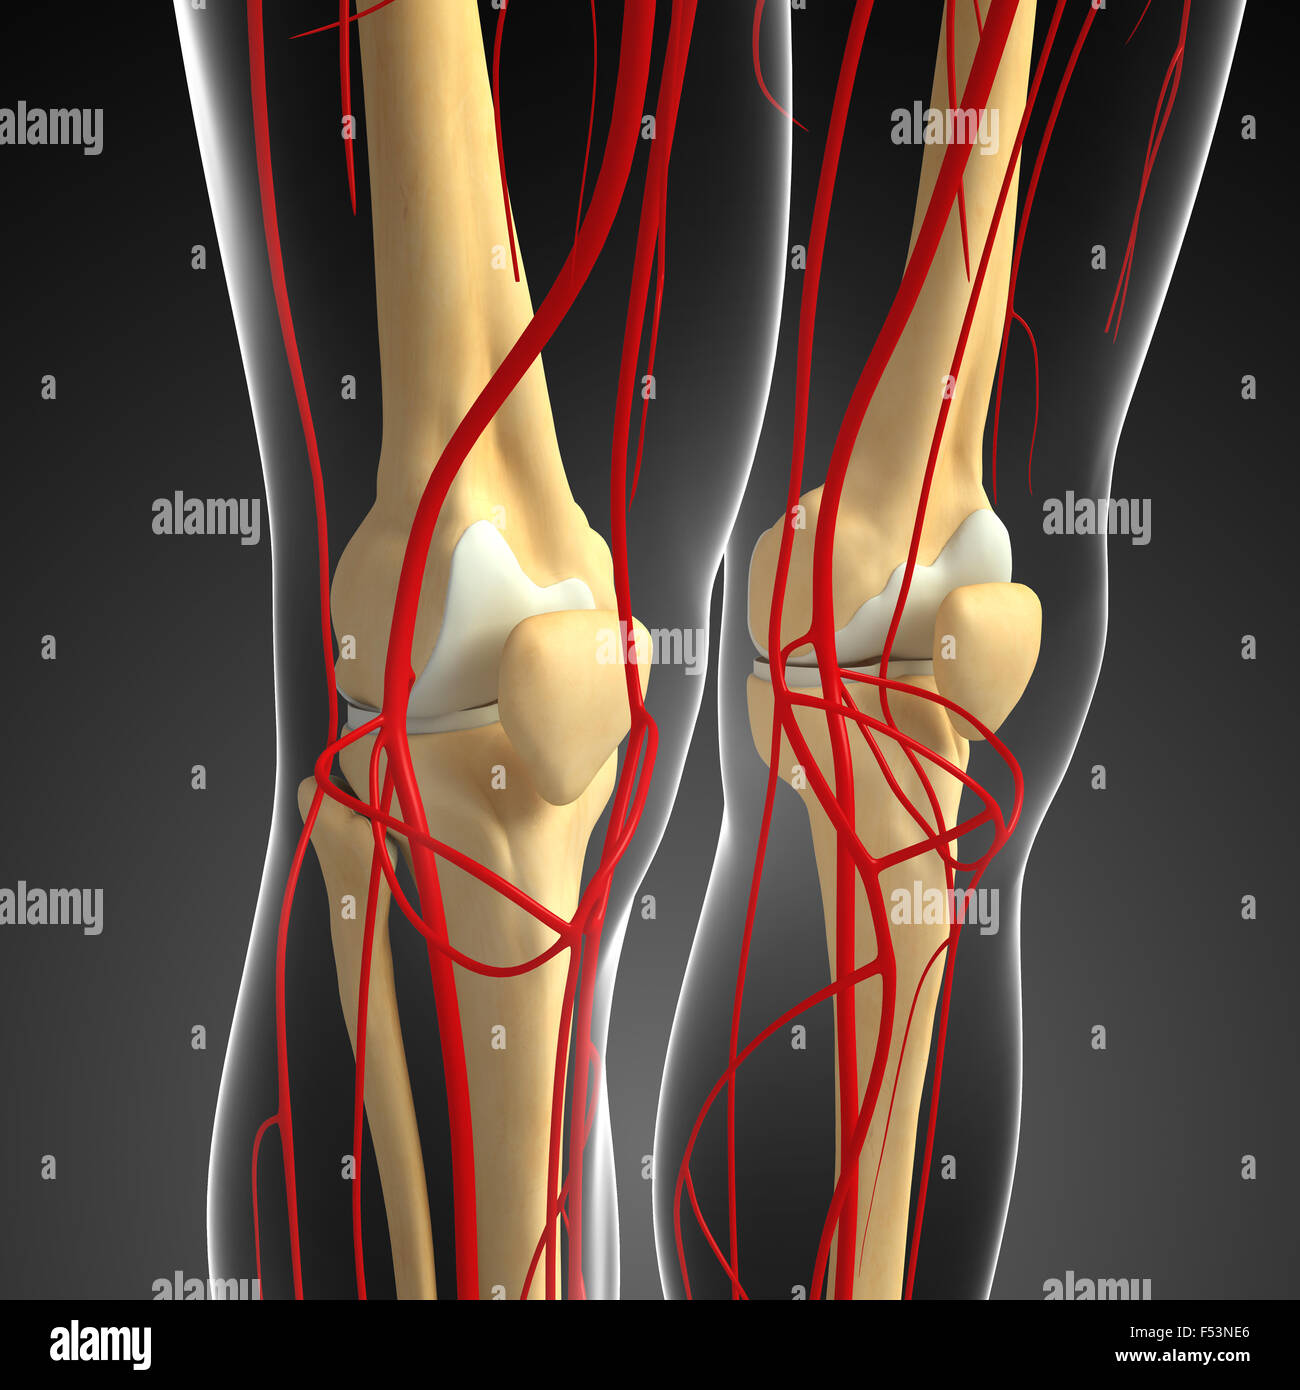 3d rendered illustration of human knee arterial system Stock Photo ...